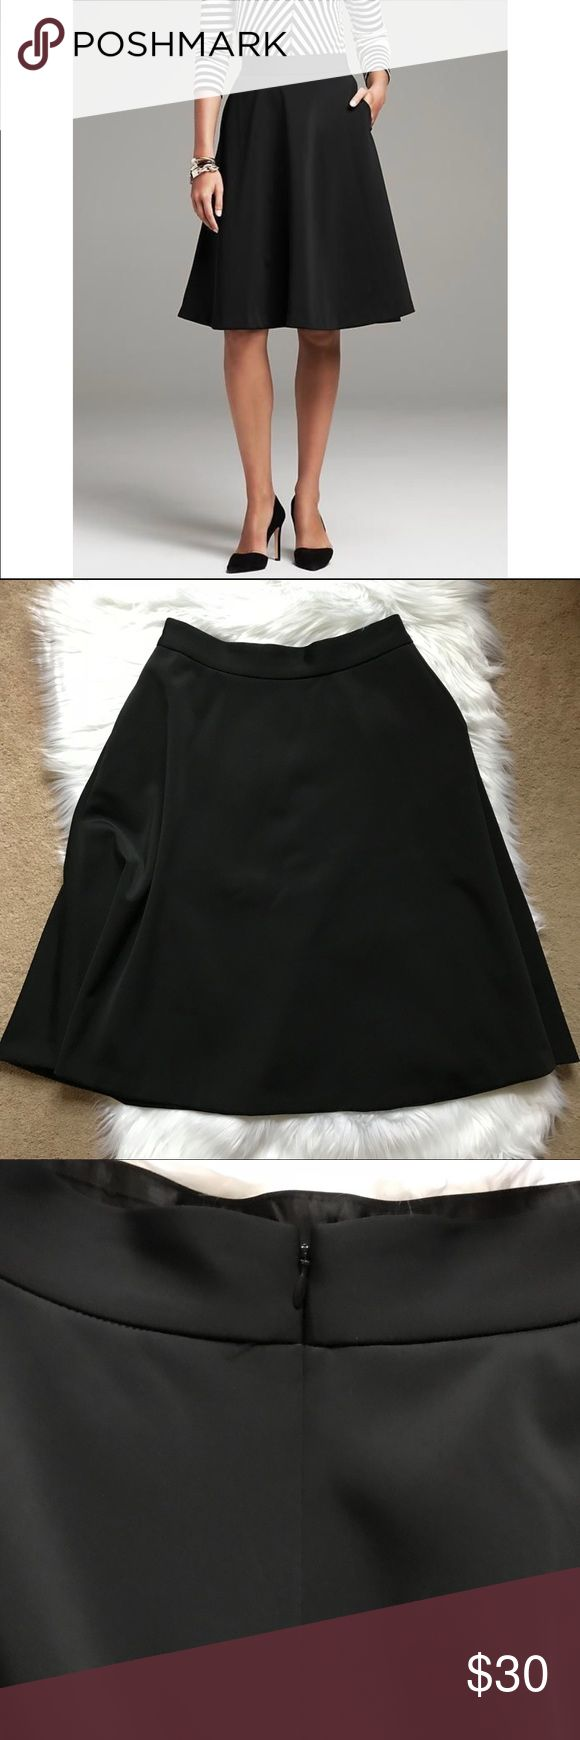 """Banana Republic Black Matte Satin Circle Skirt NWT Banana Republic Black Matte Satin Circle Skirt.  New with tags, size 8.  HAS POCKETS!  😊😊😊  Measurements laying flat Length 25"""" Waist 14"""" Skirt bottom hem when stretched is 40"""" (this skirt is gorgeously flouncy and perfect for the holidays!) Banana Republic Skirts Midi"""